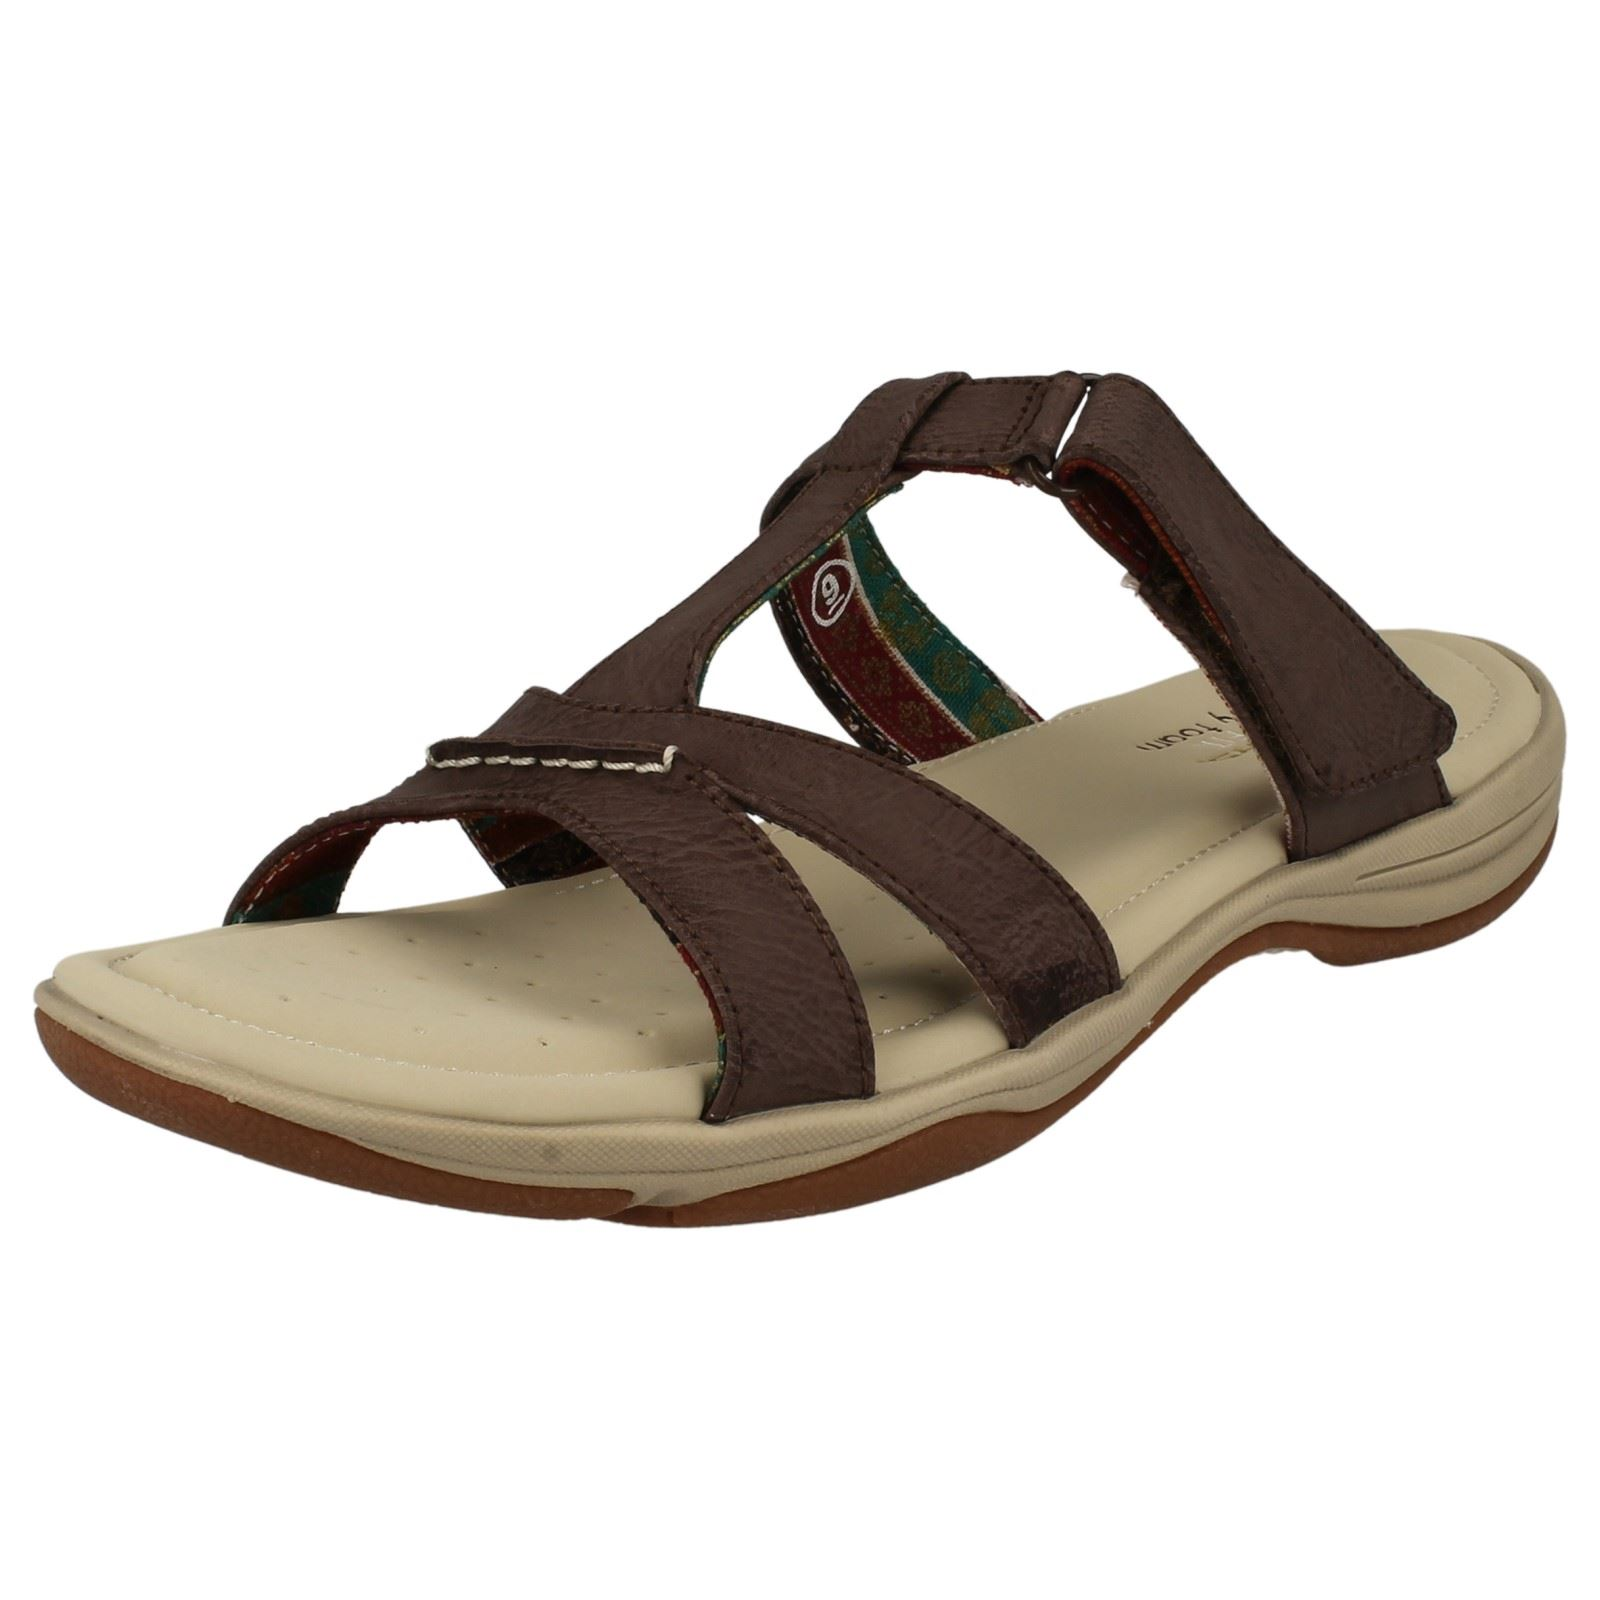 Buy skechers sandals   OFF49% Discounted 736ad46ab